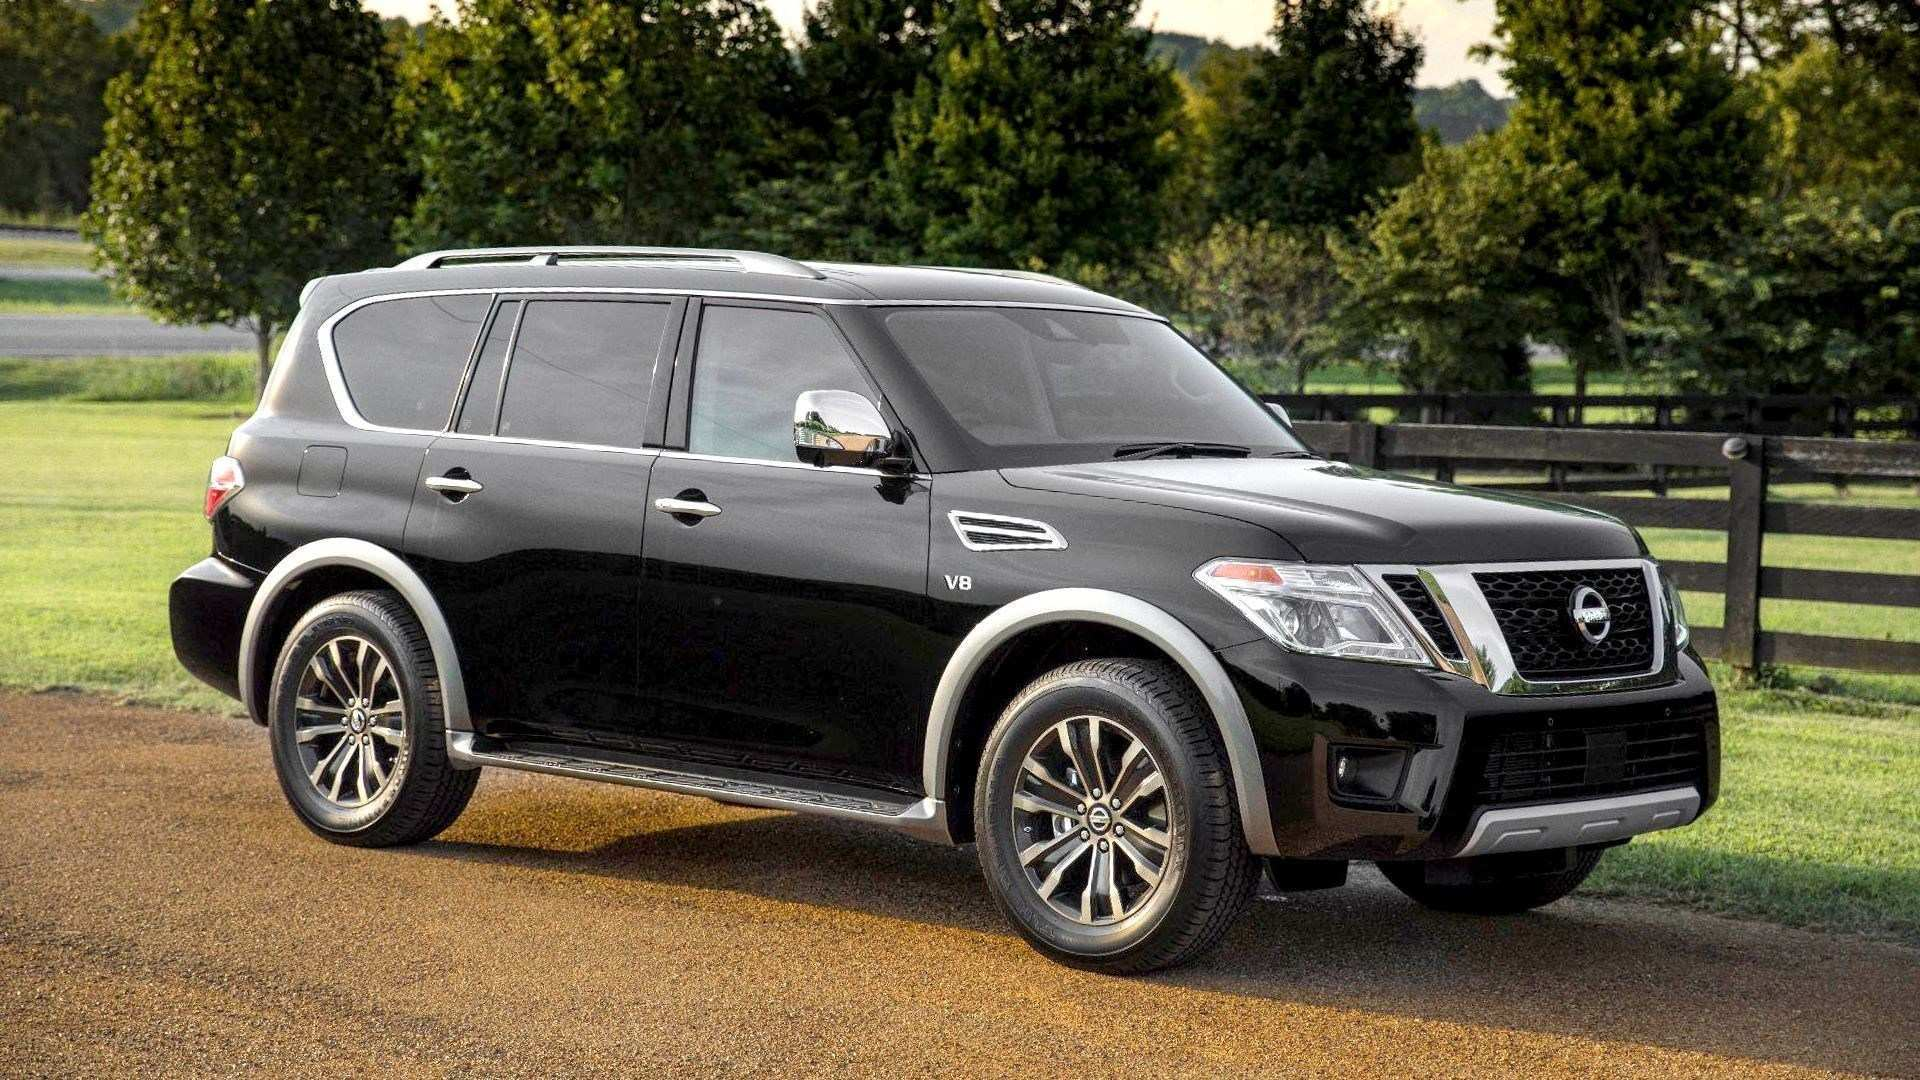 20 Best New Nissan Patrol 2019 Concept